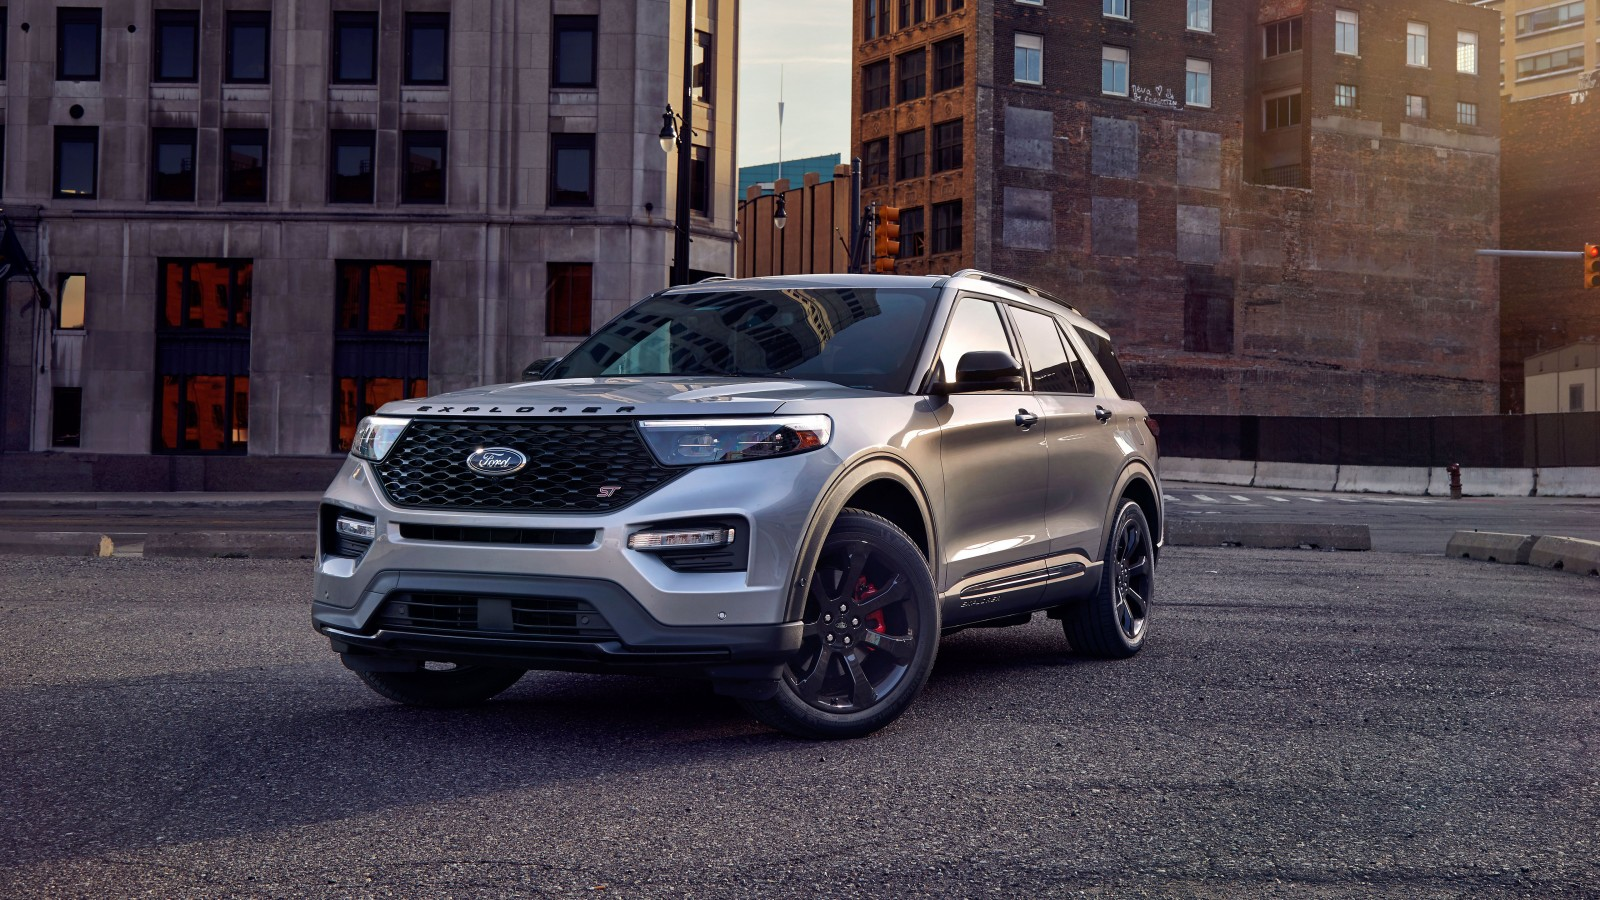 2020 Ford Explorer St 4k Wallpaper Hd Car Wallpapers